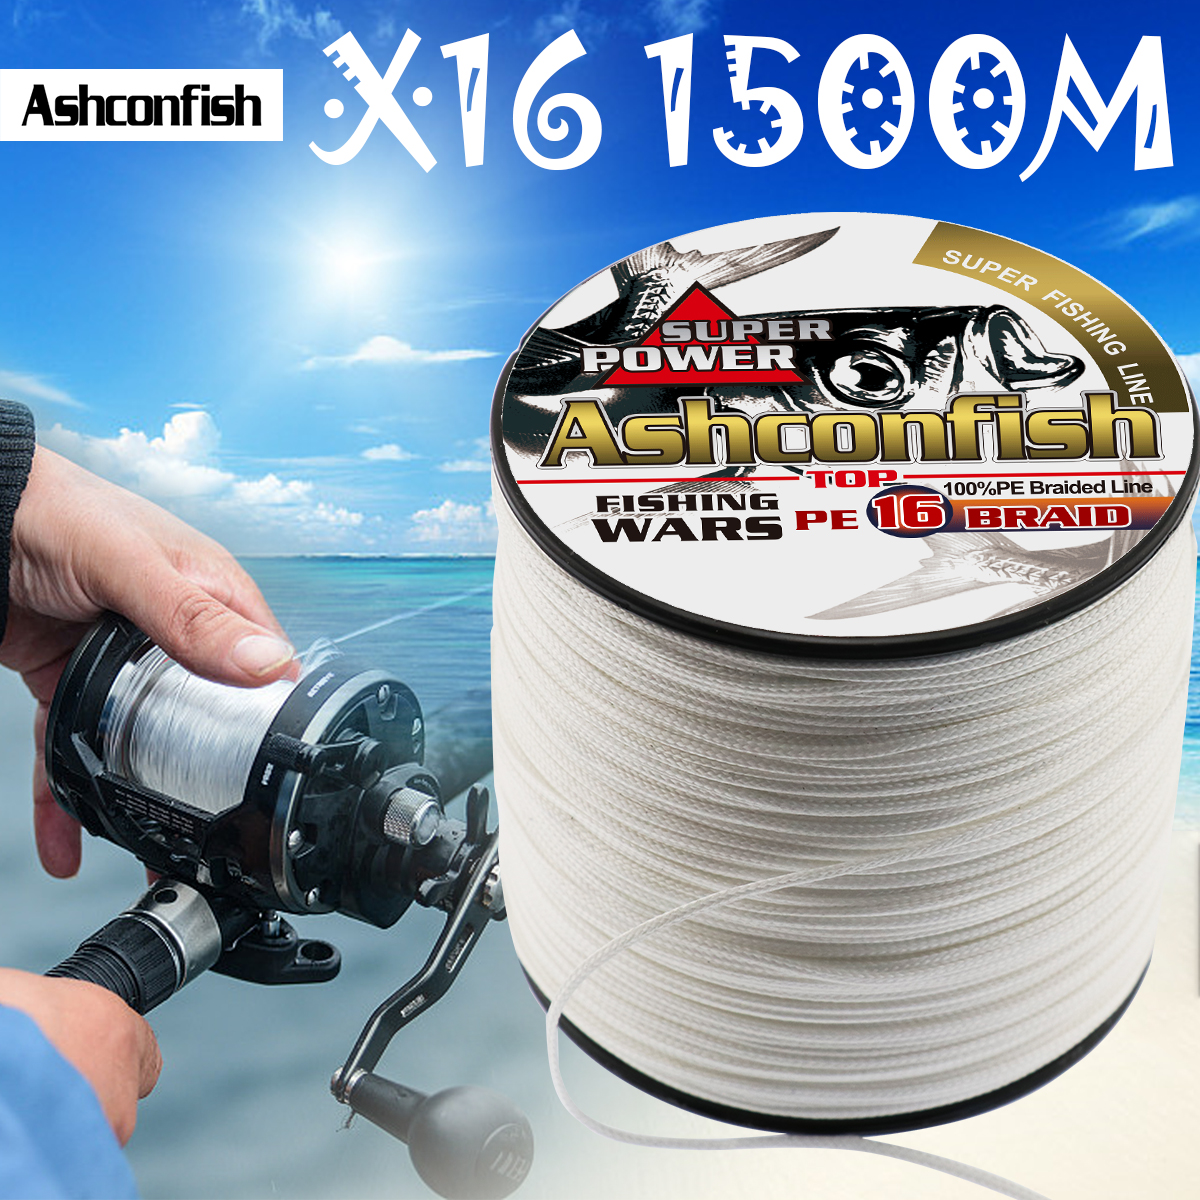 16 Strands Super Strong Braided Fishing Line Pe Hollowcore 1500M Wire Carp Fishing Saltwater 20 30 60 130 150 200 300 400 500LBS